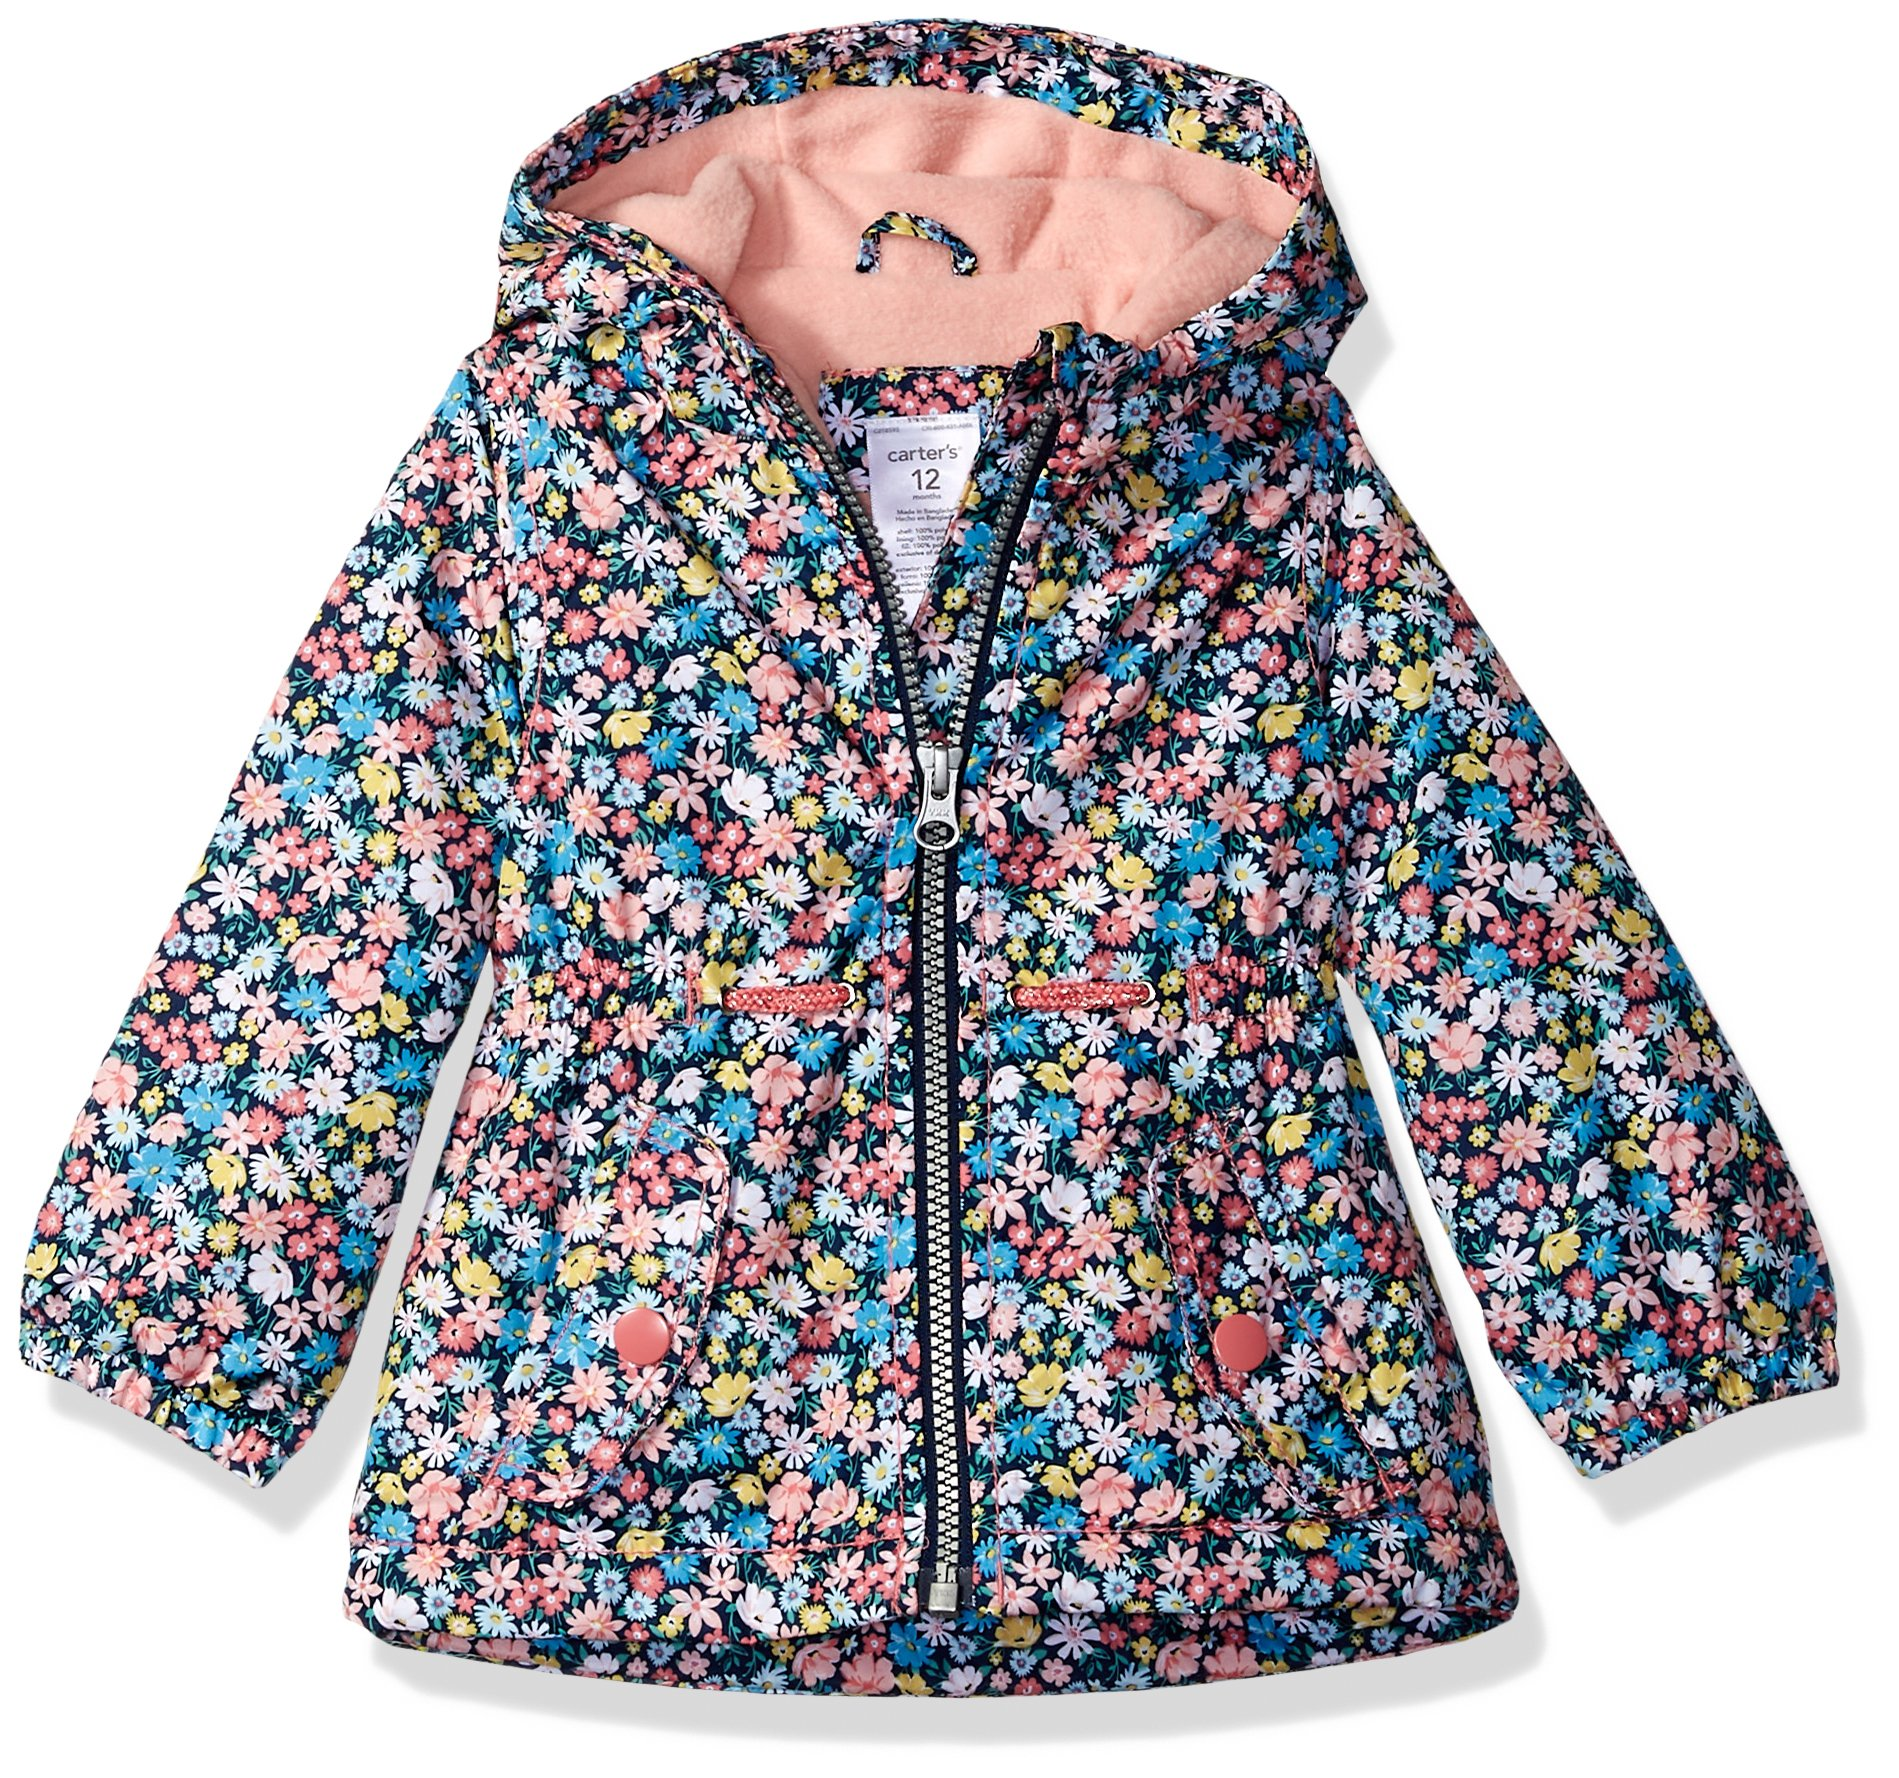 Carter's Baby Girls Midweight Fleece-Lined Jacket, Navy Floral, 18M